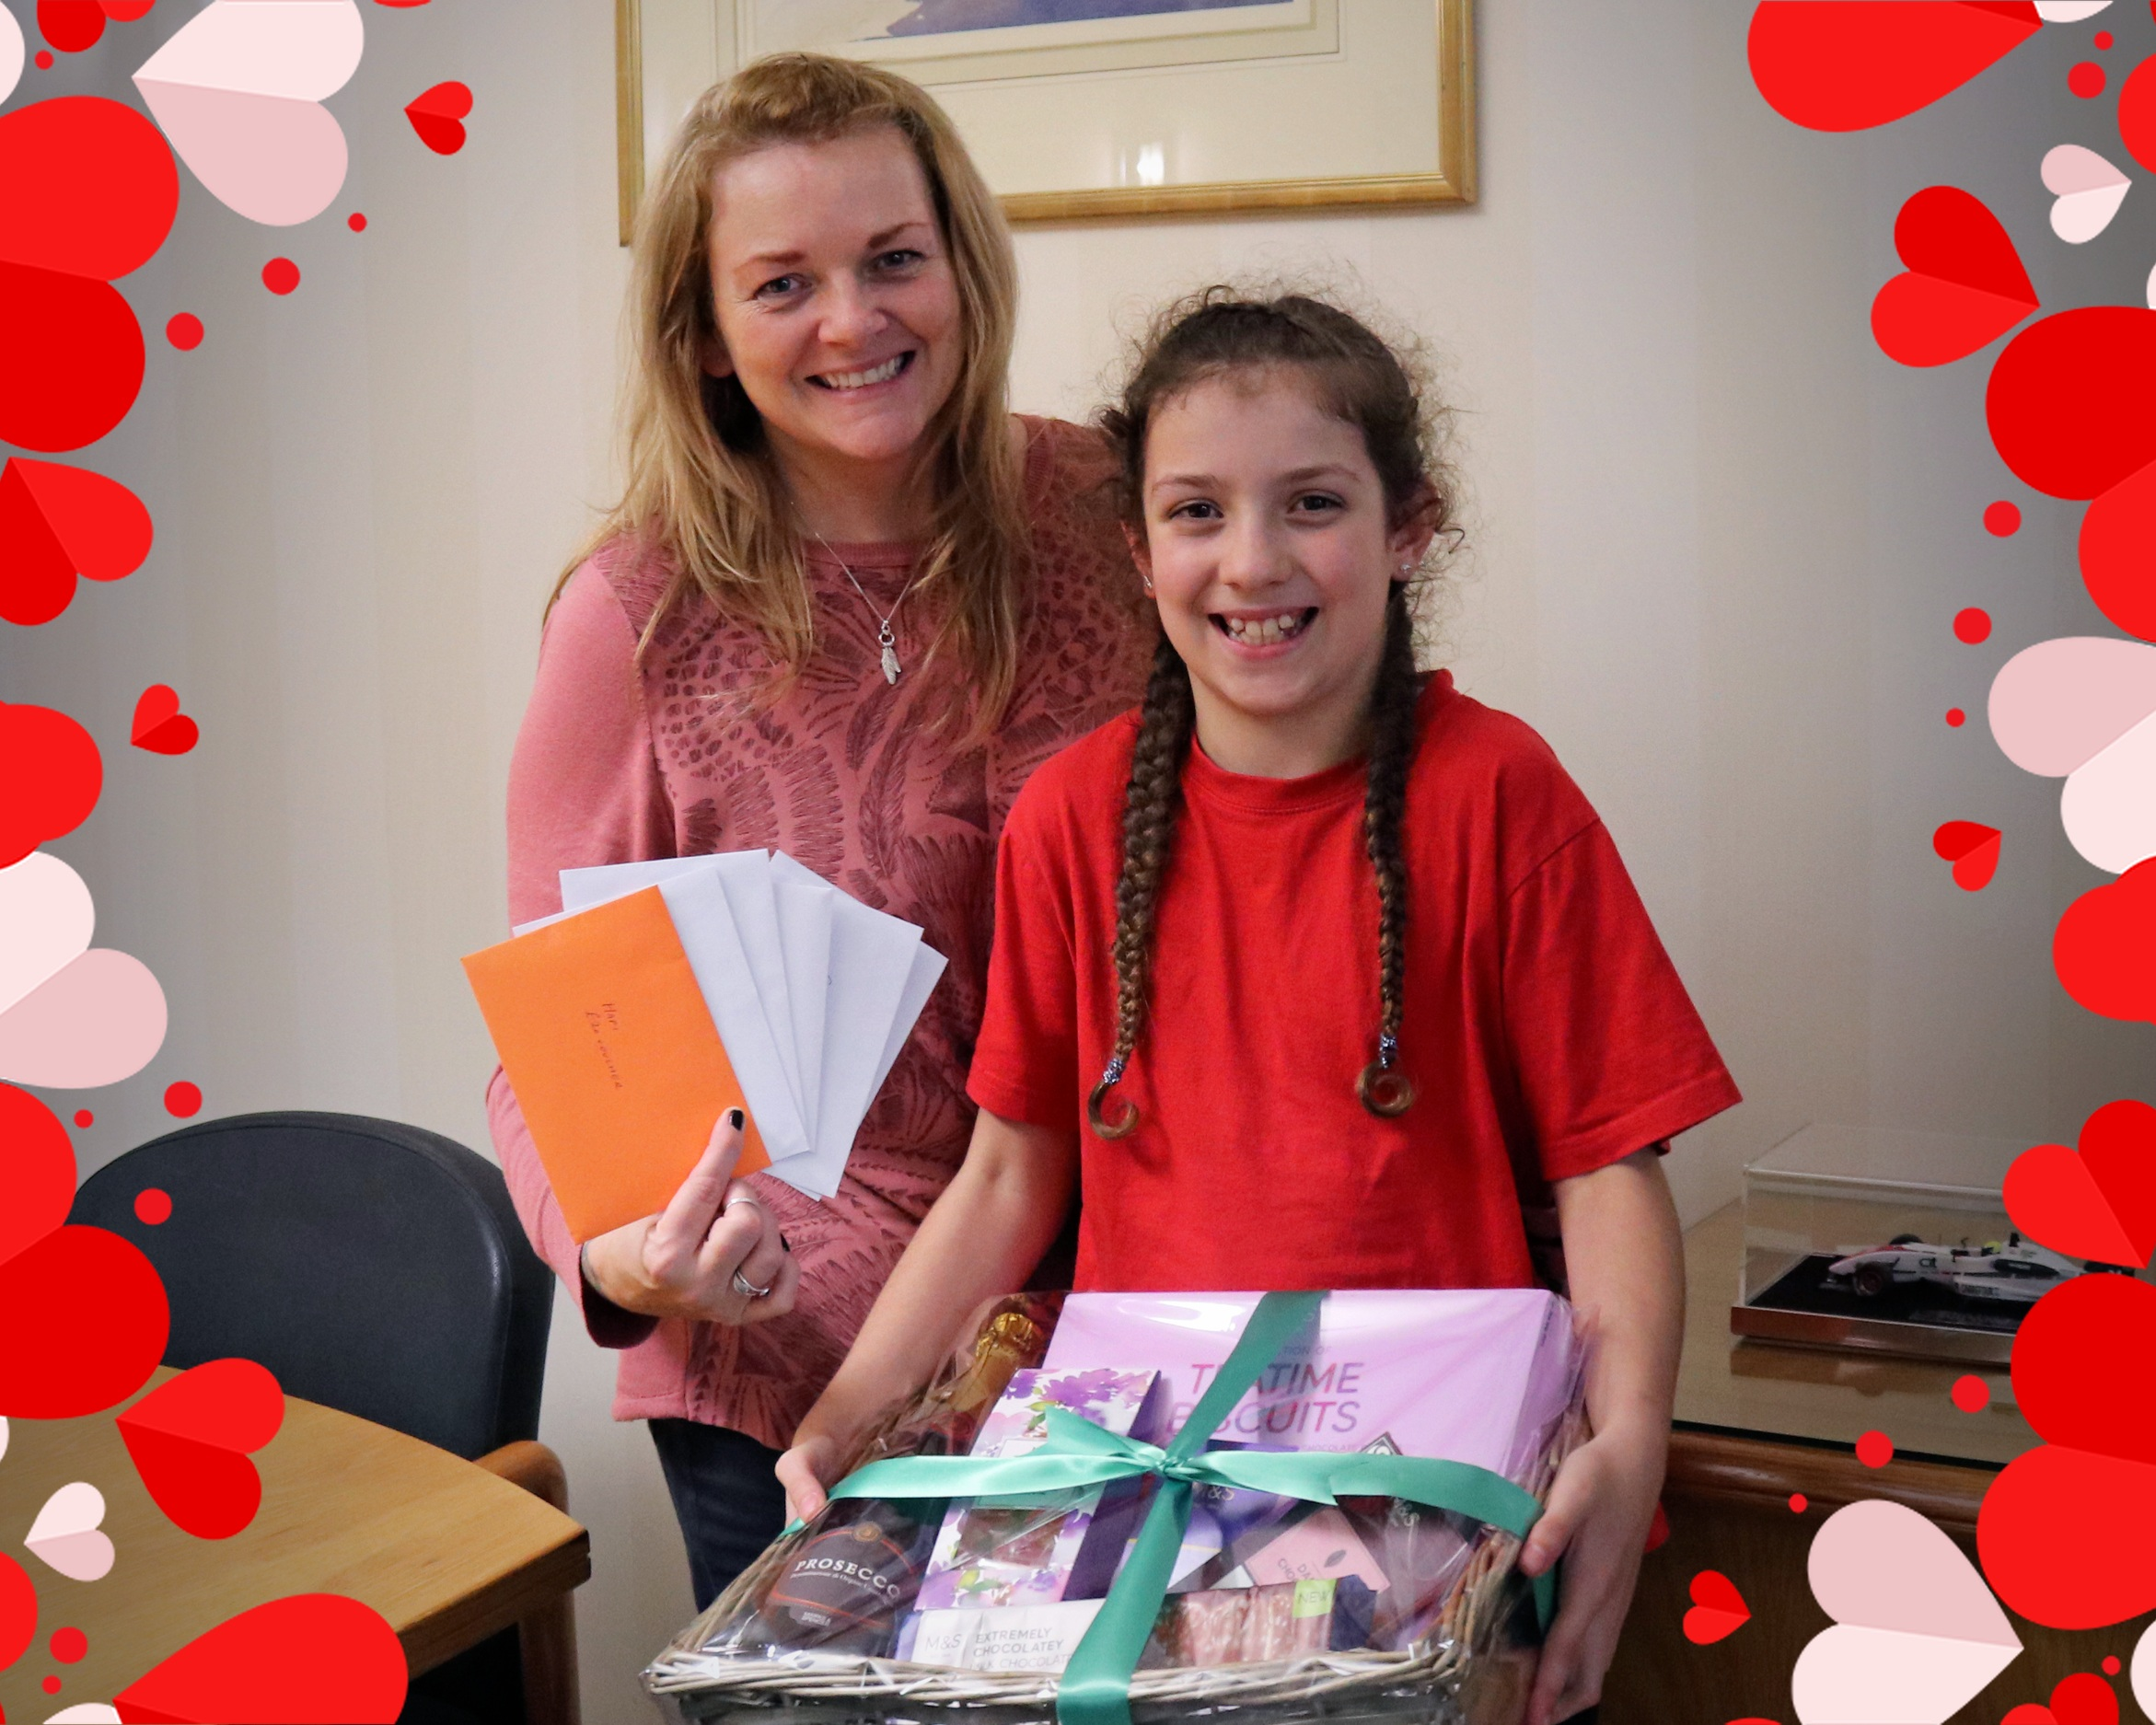 Winner of Liberty Wharf's Vote for your Valentine Competition -